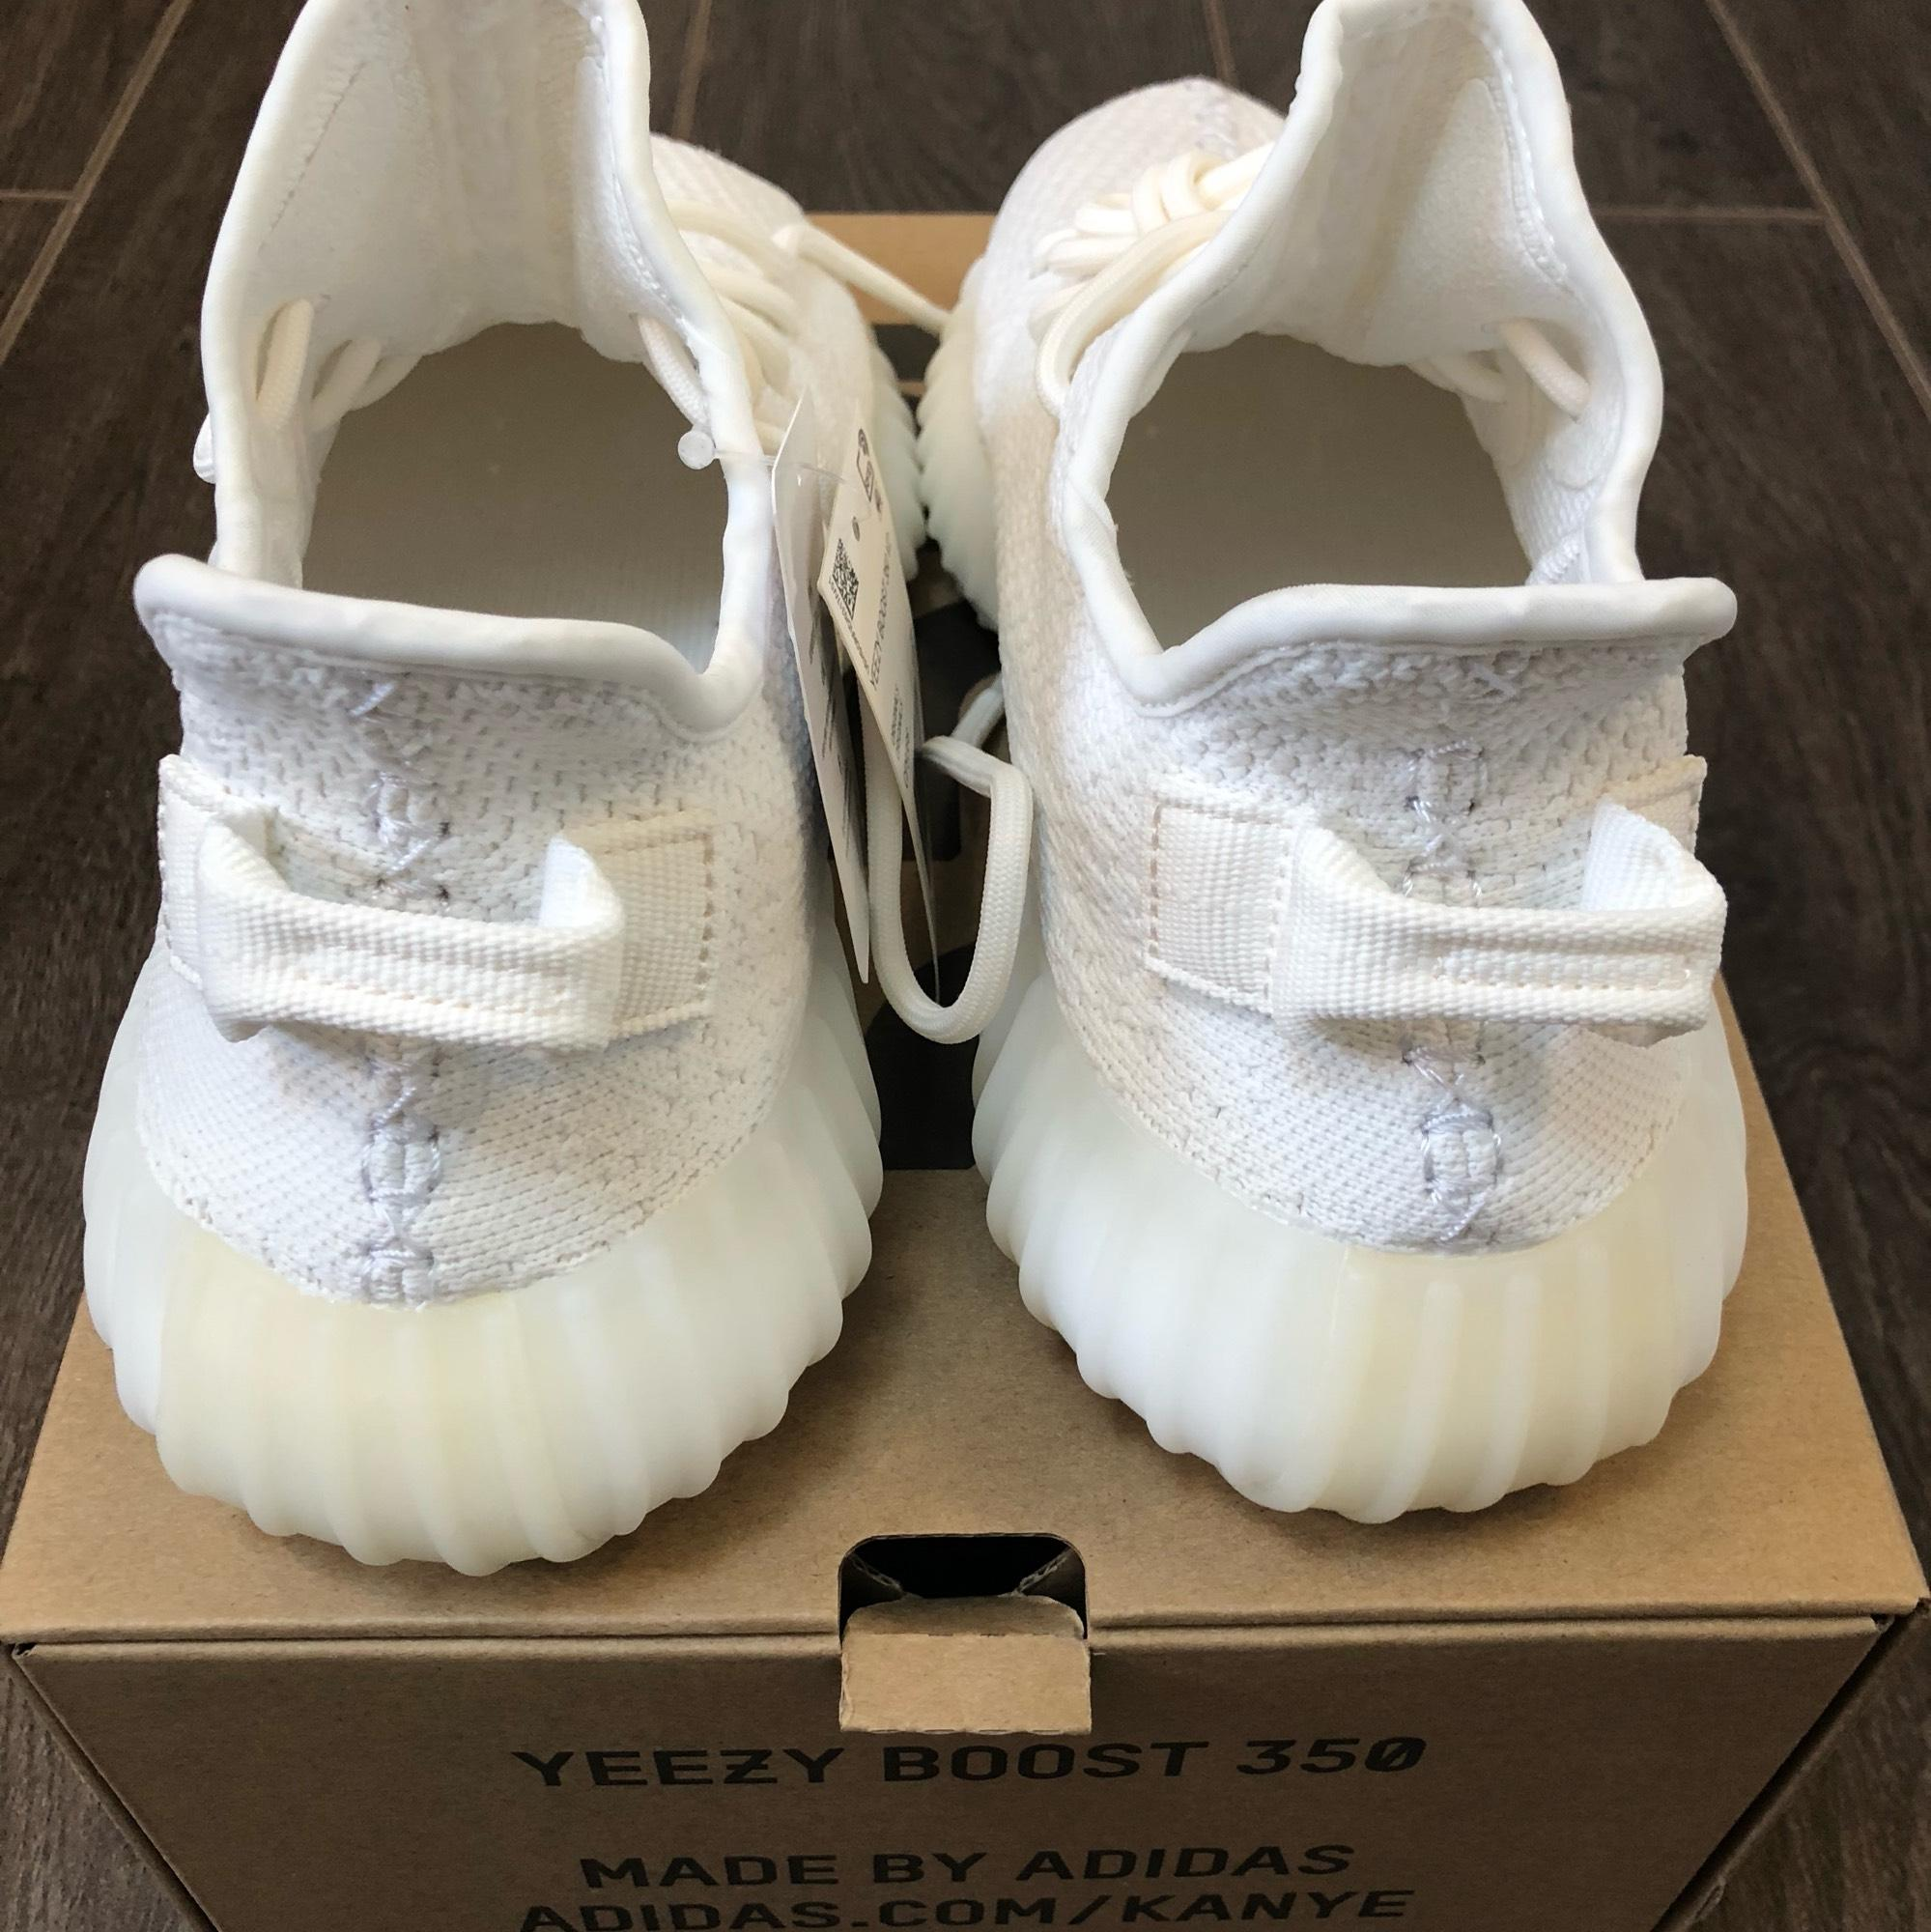 90ec76d77 ... adidas X Yeezy White Boost 350 V2 Color Color Color Triple Sneakers  Size US 7.5 Regular ...